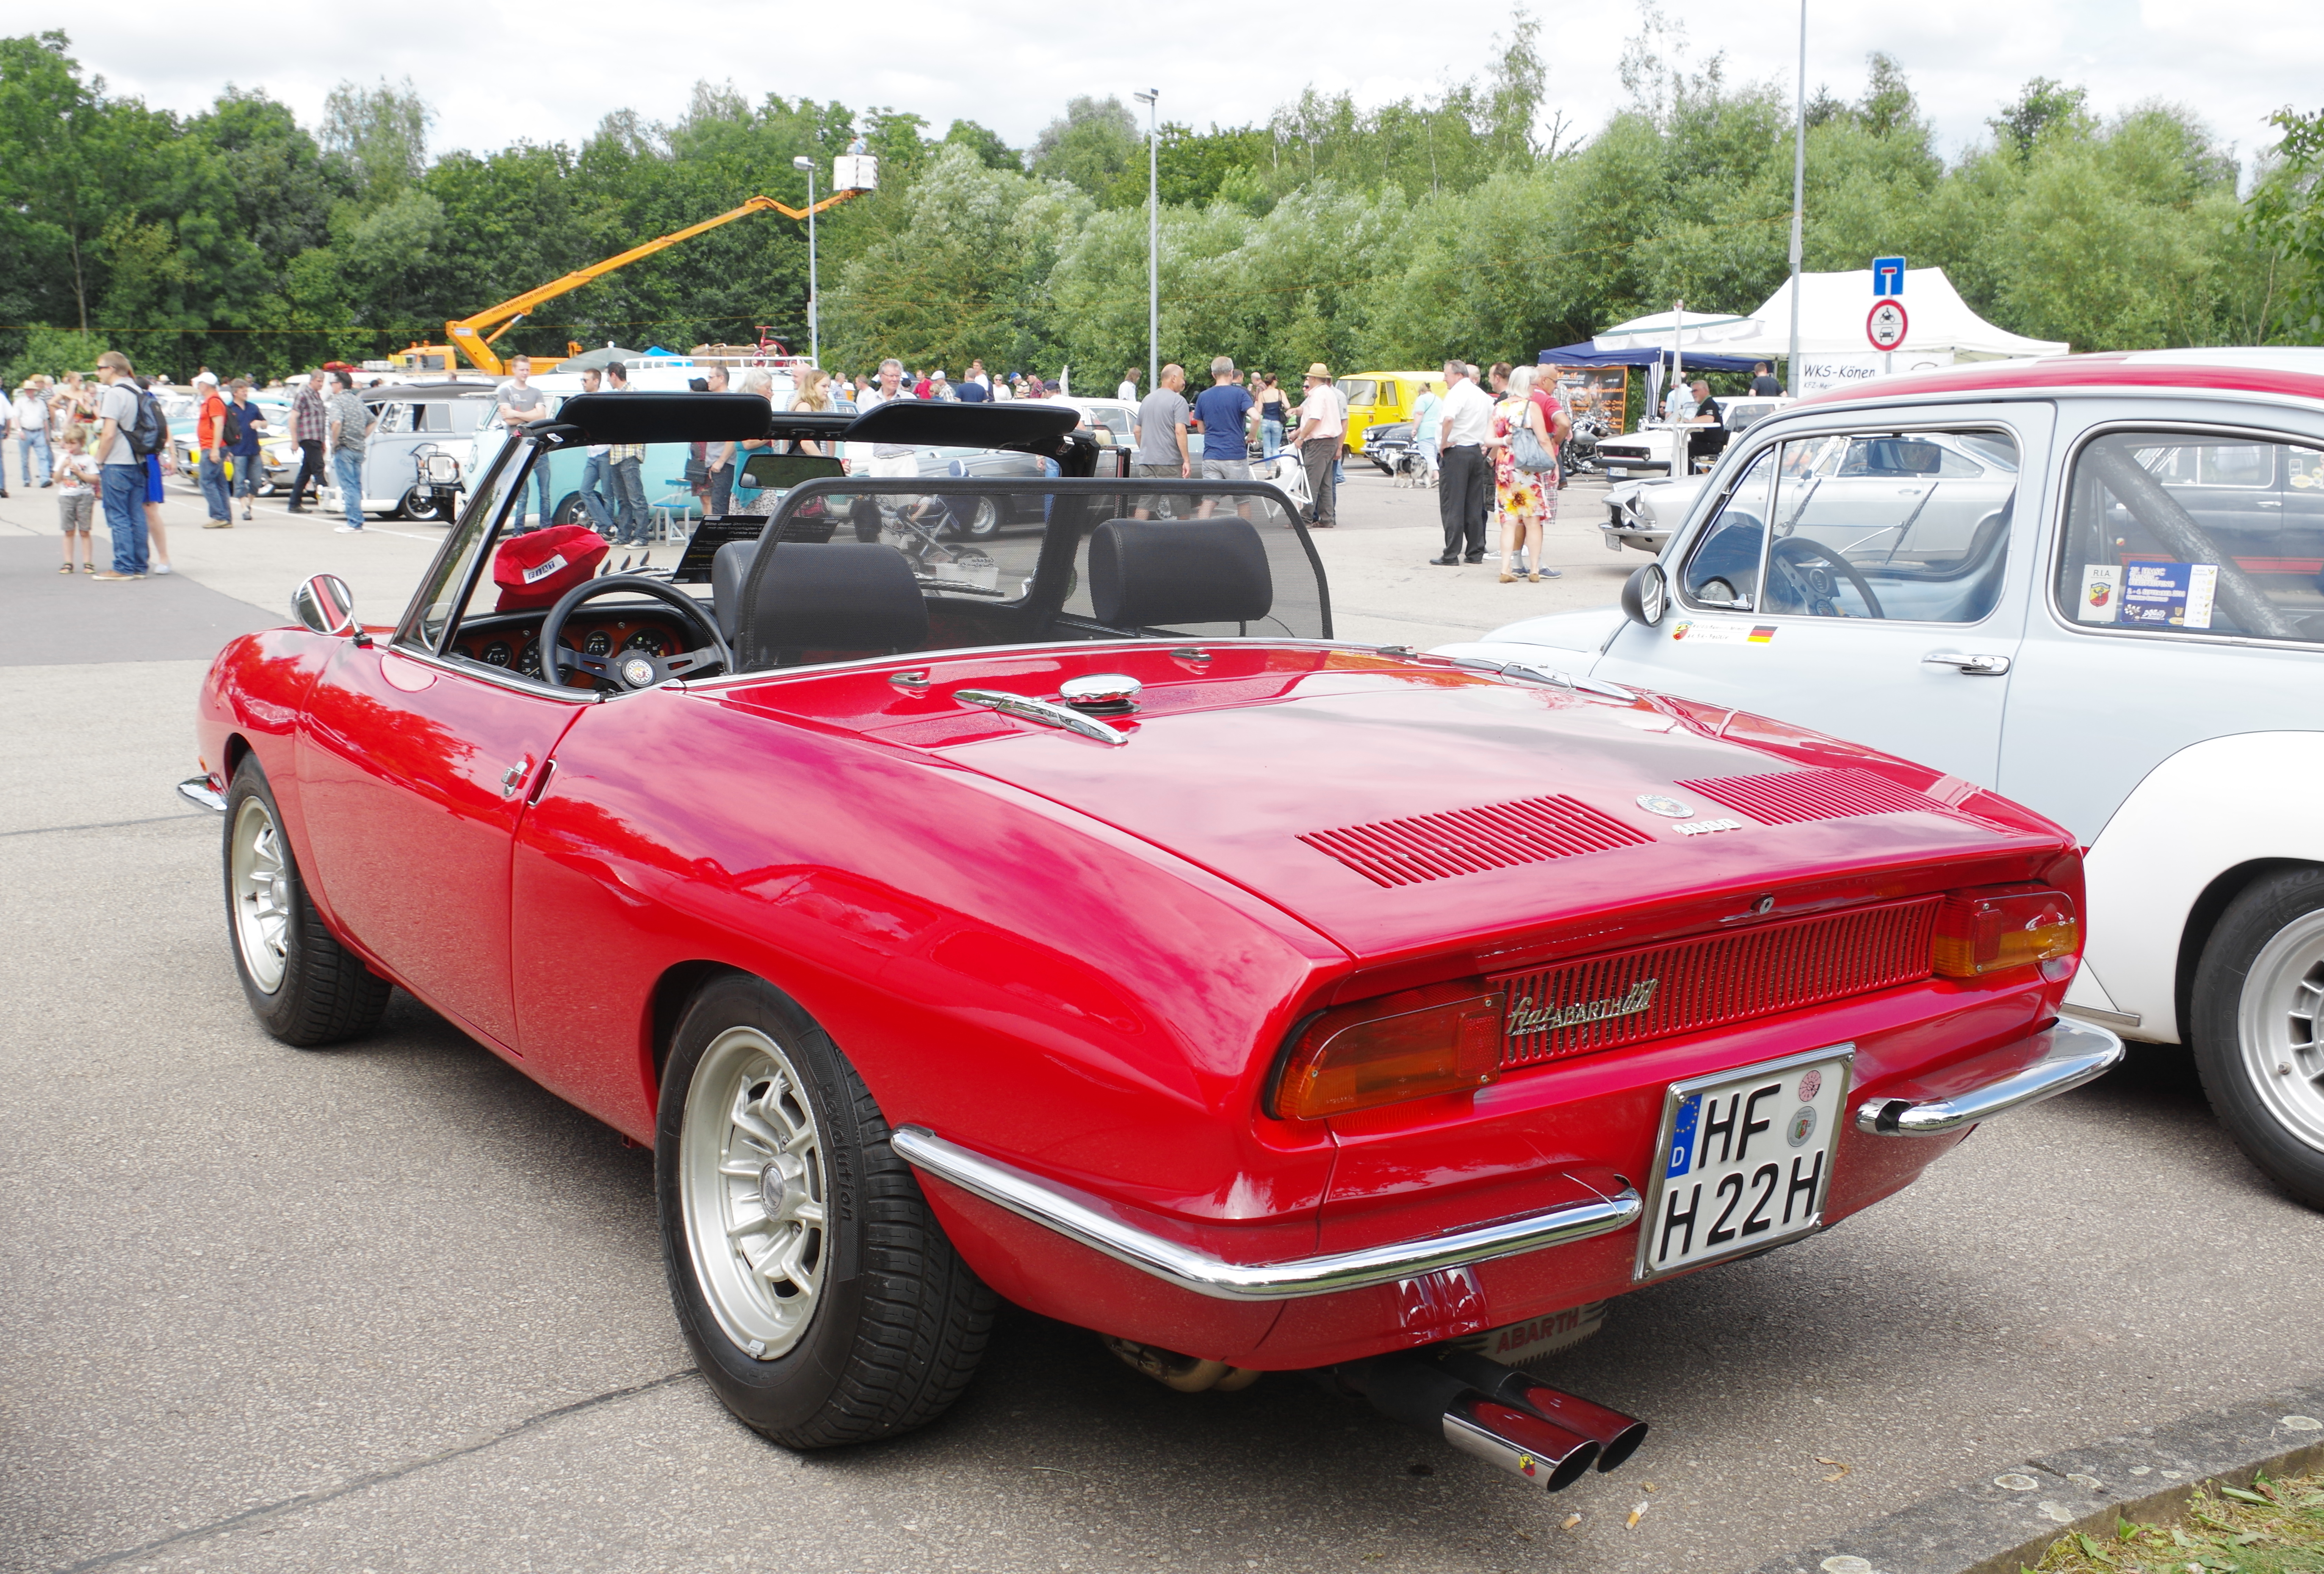 file fiat 850 spider abarth 1000 bw 2016 07 17 14 04 wikimedia commons. Black Bedroom Furniture Sets. Home Design Ideas